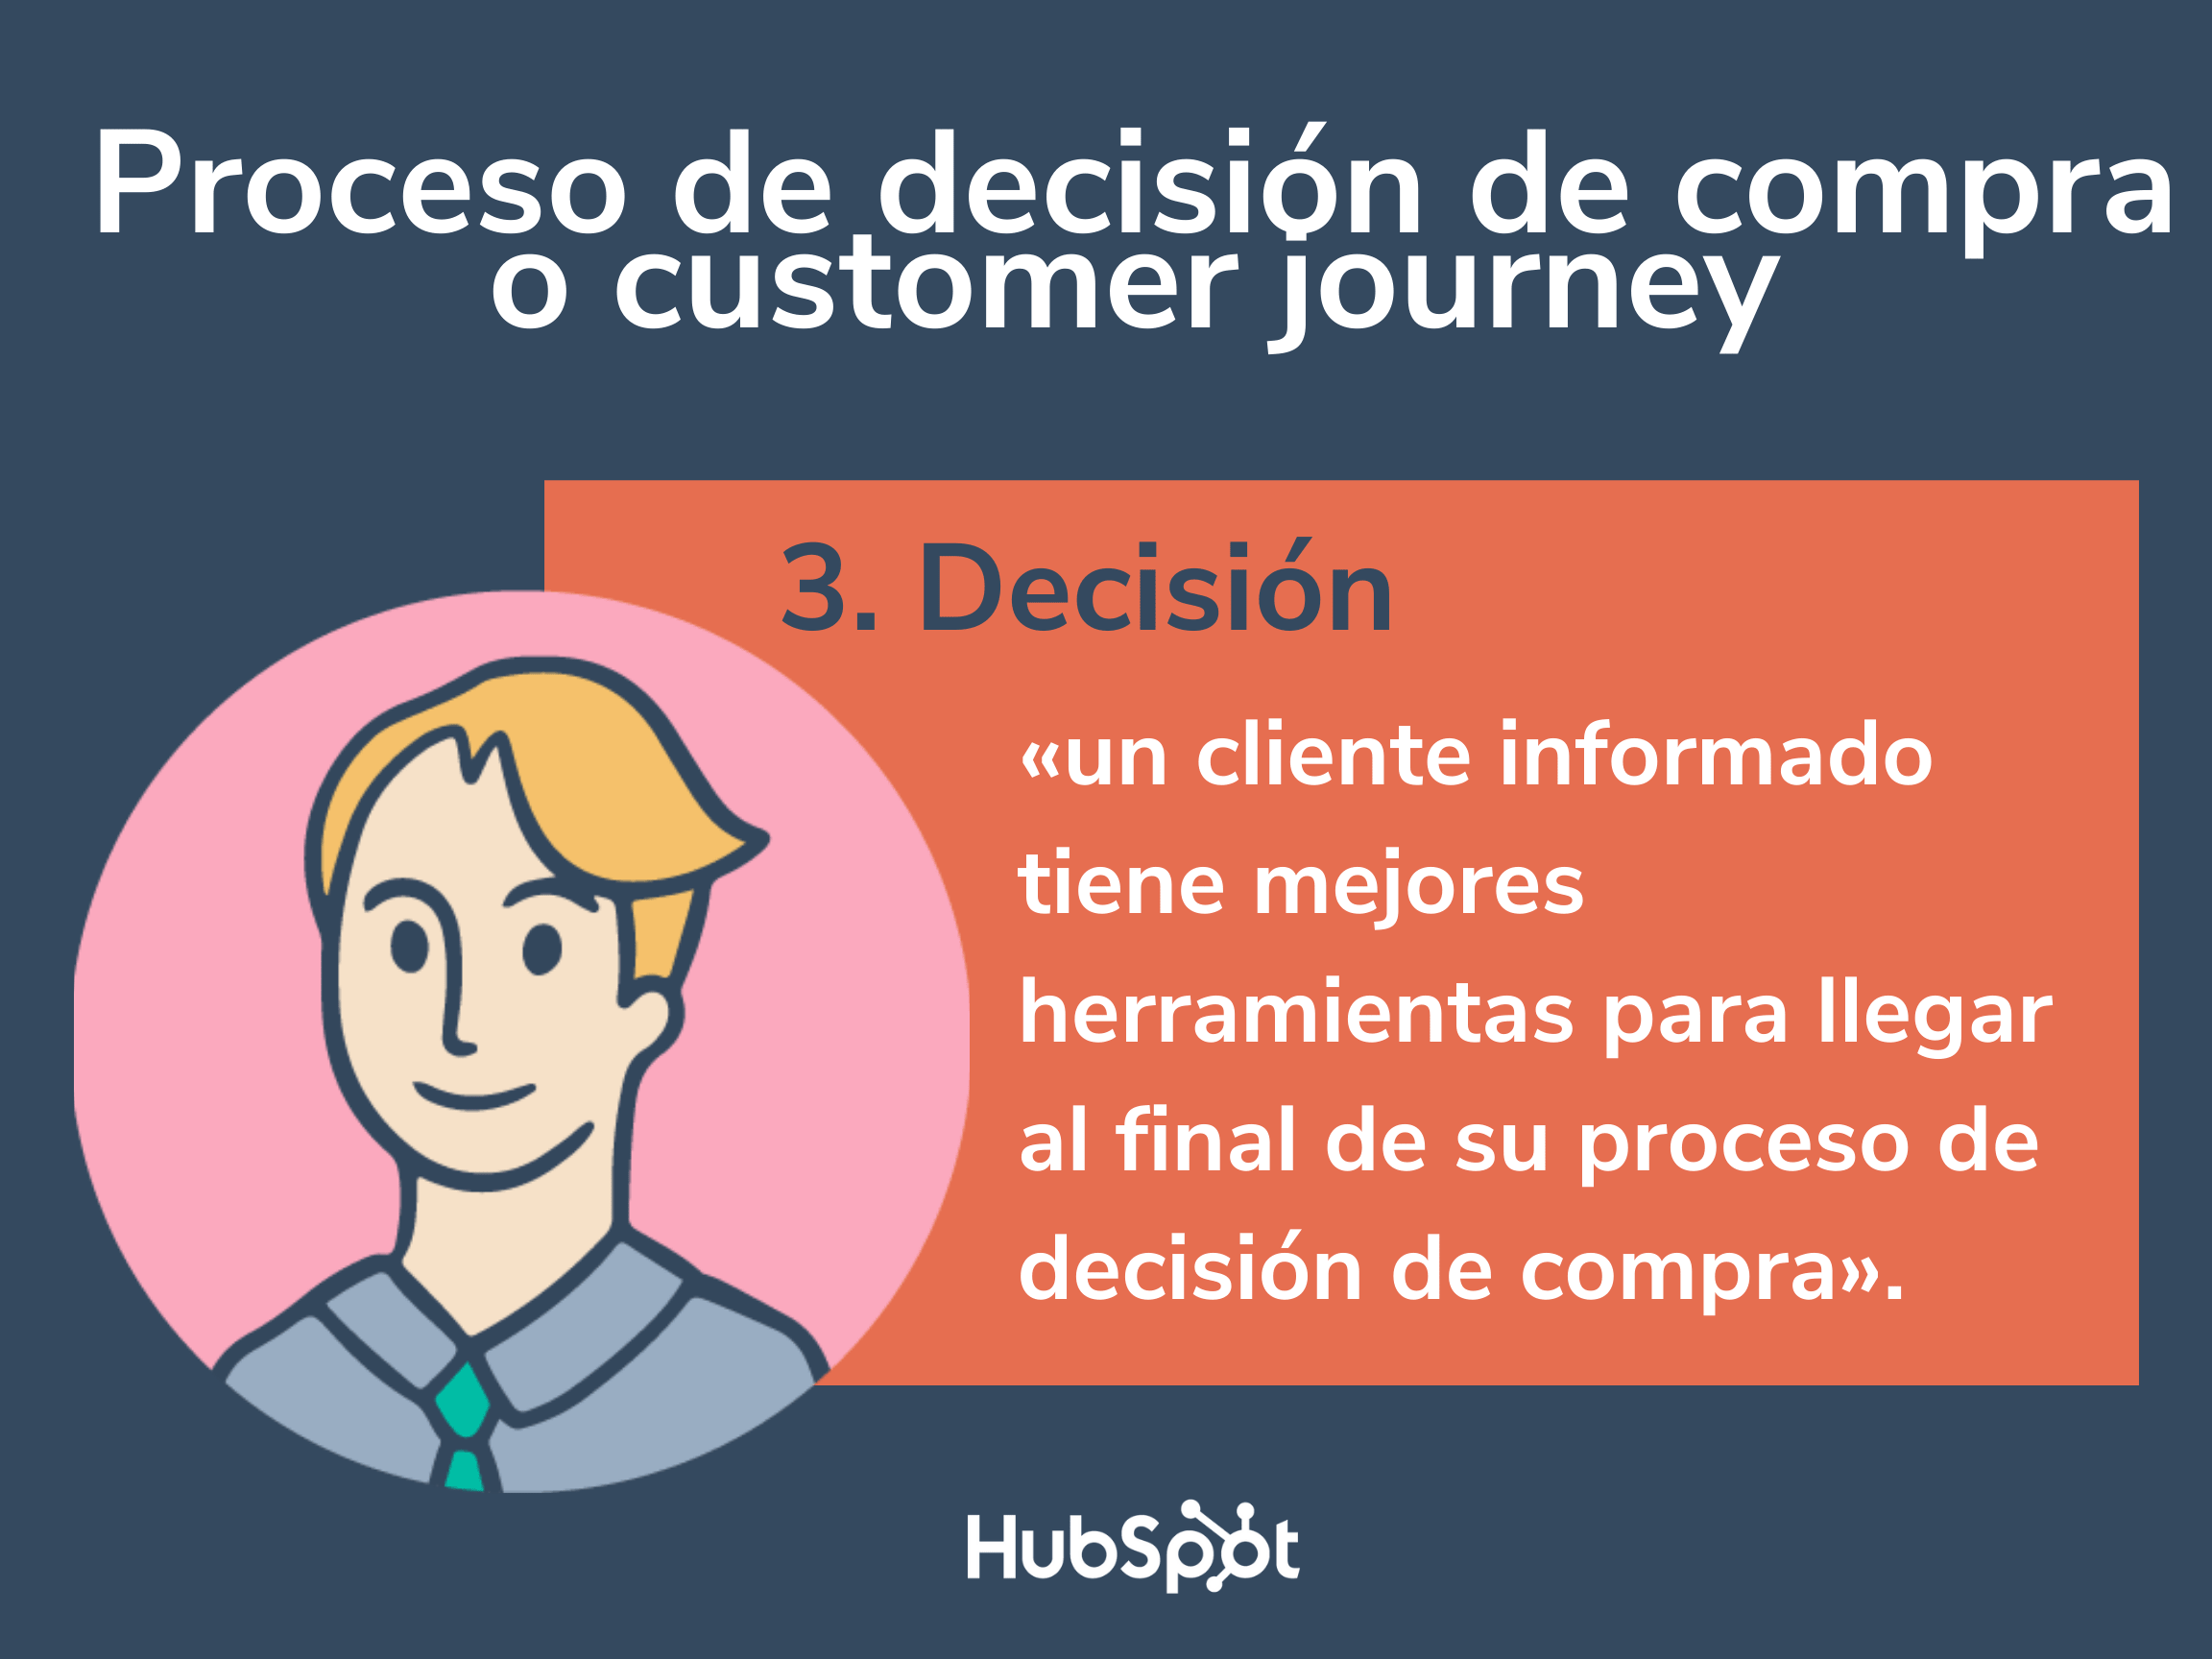 Tercera etapa del customer journey: decisión